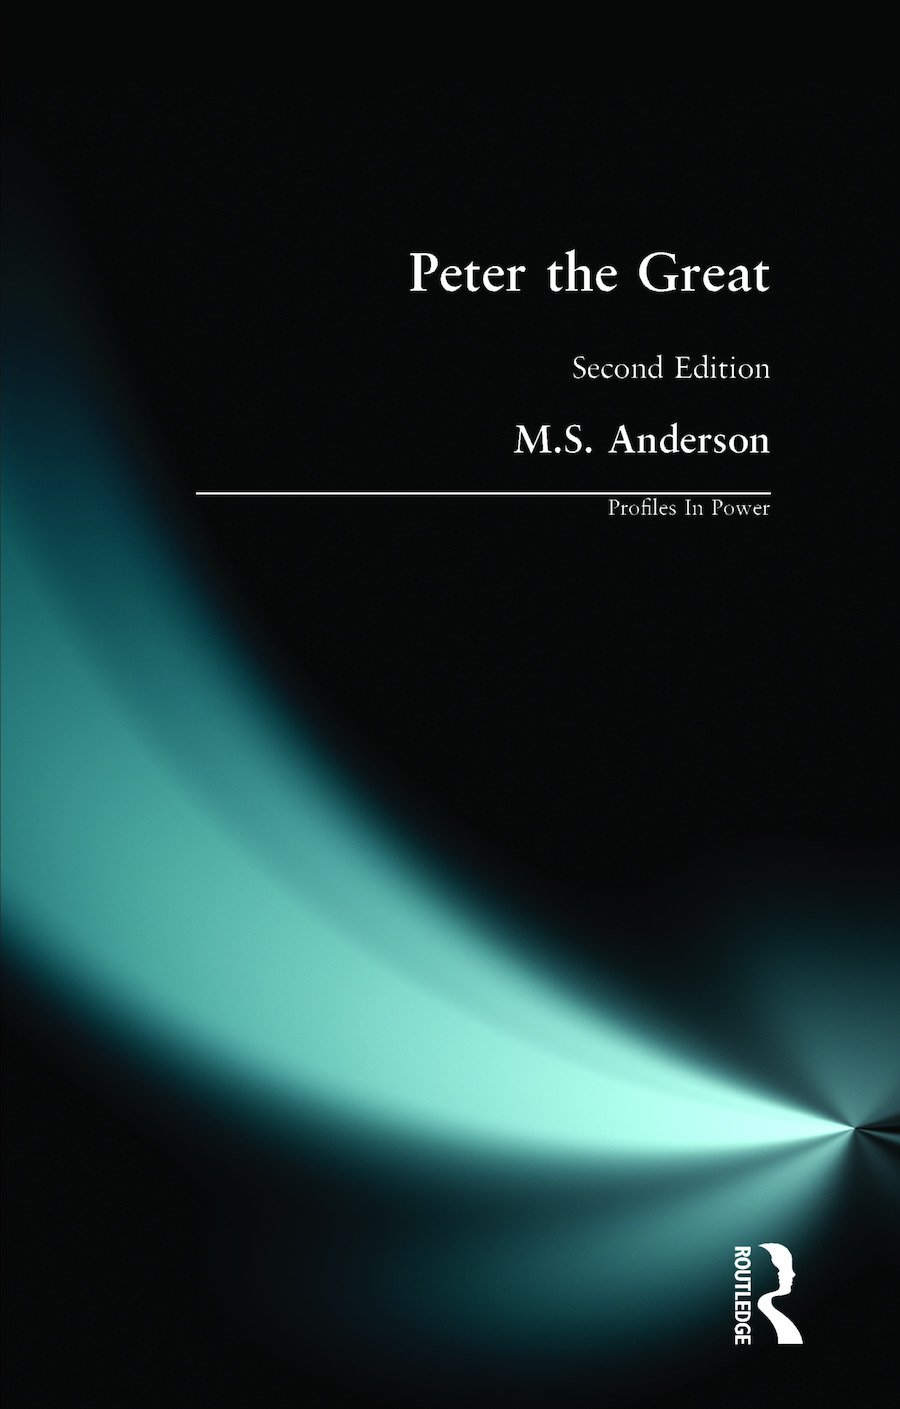 Peter the Man: Character and Personality